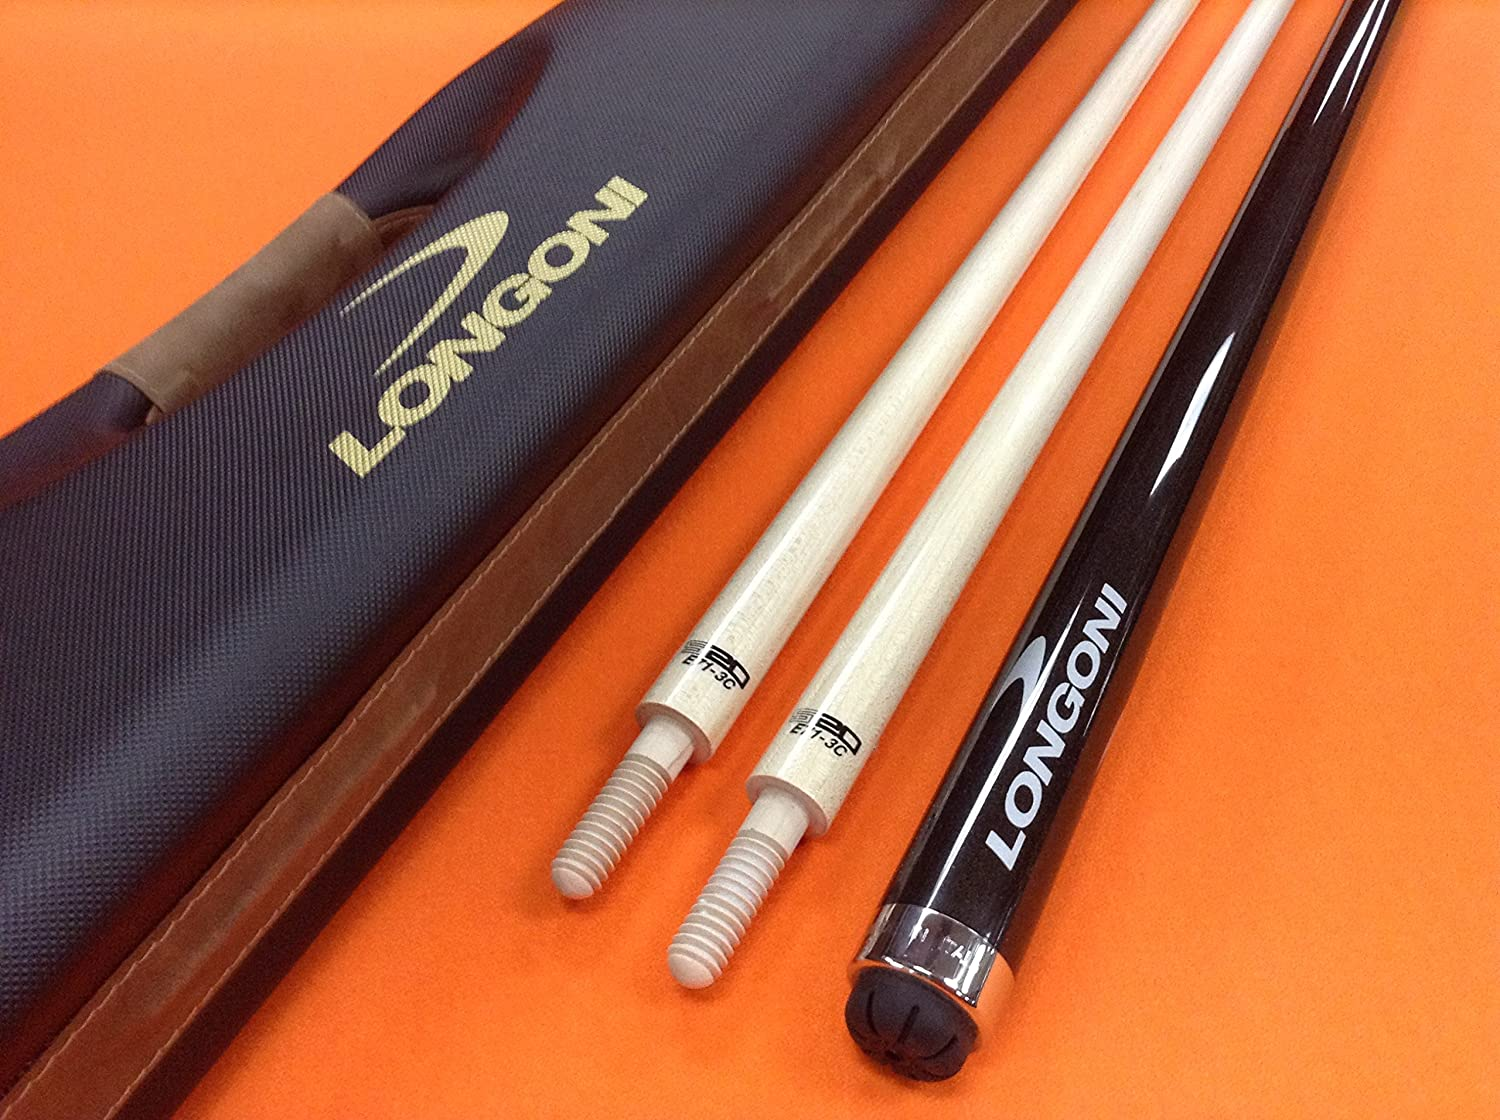 Longoni Carom Cueクリスタルwith 2つs20シャフト&ケース B077V3ZSCL